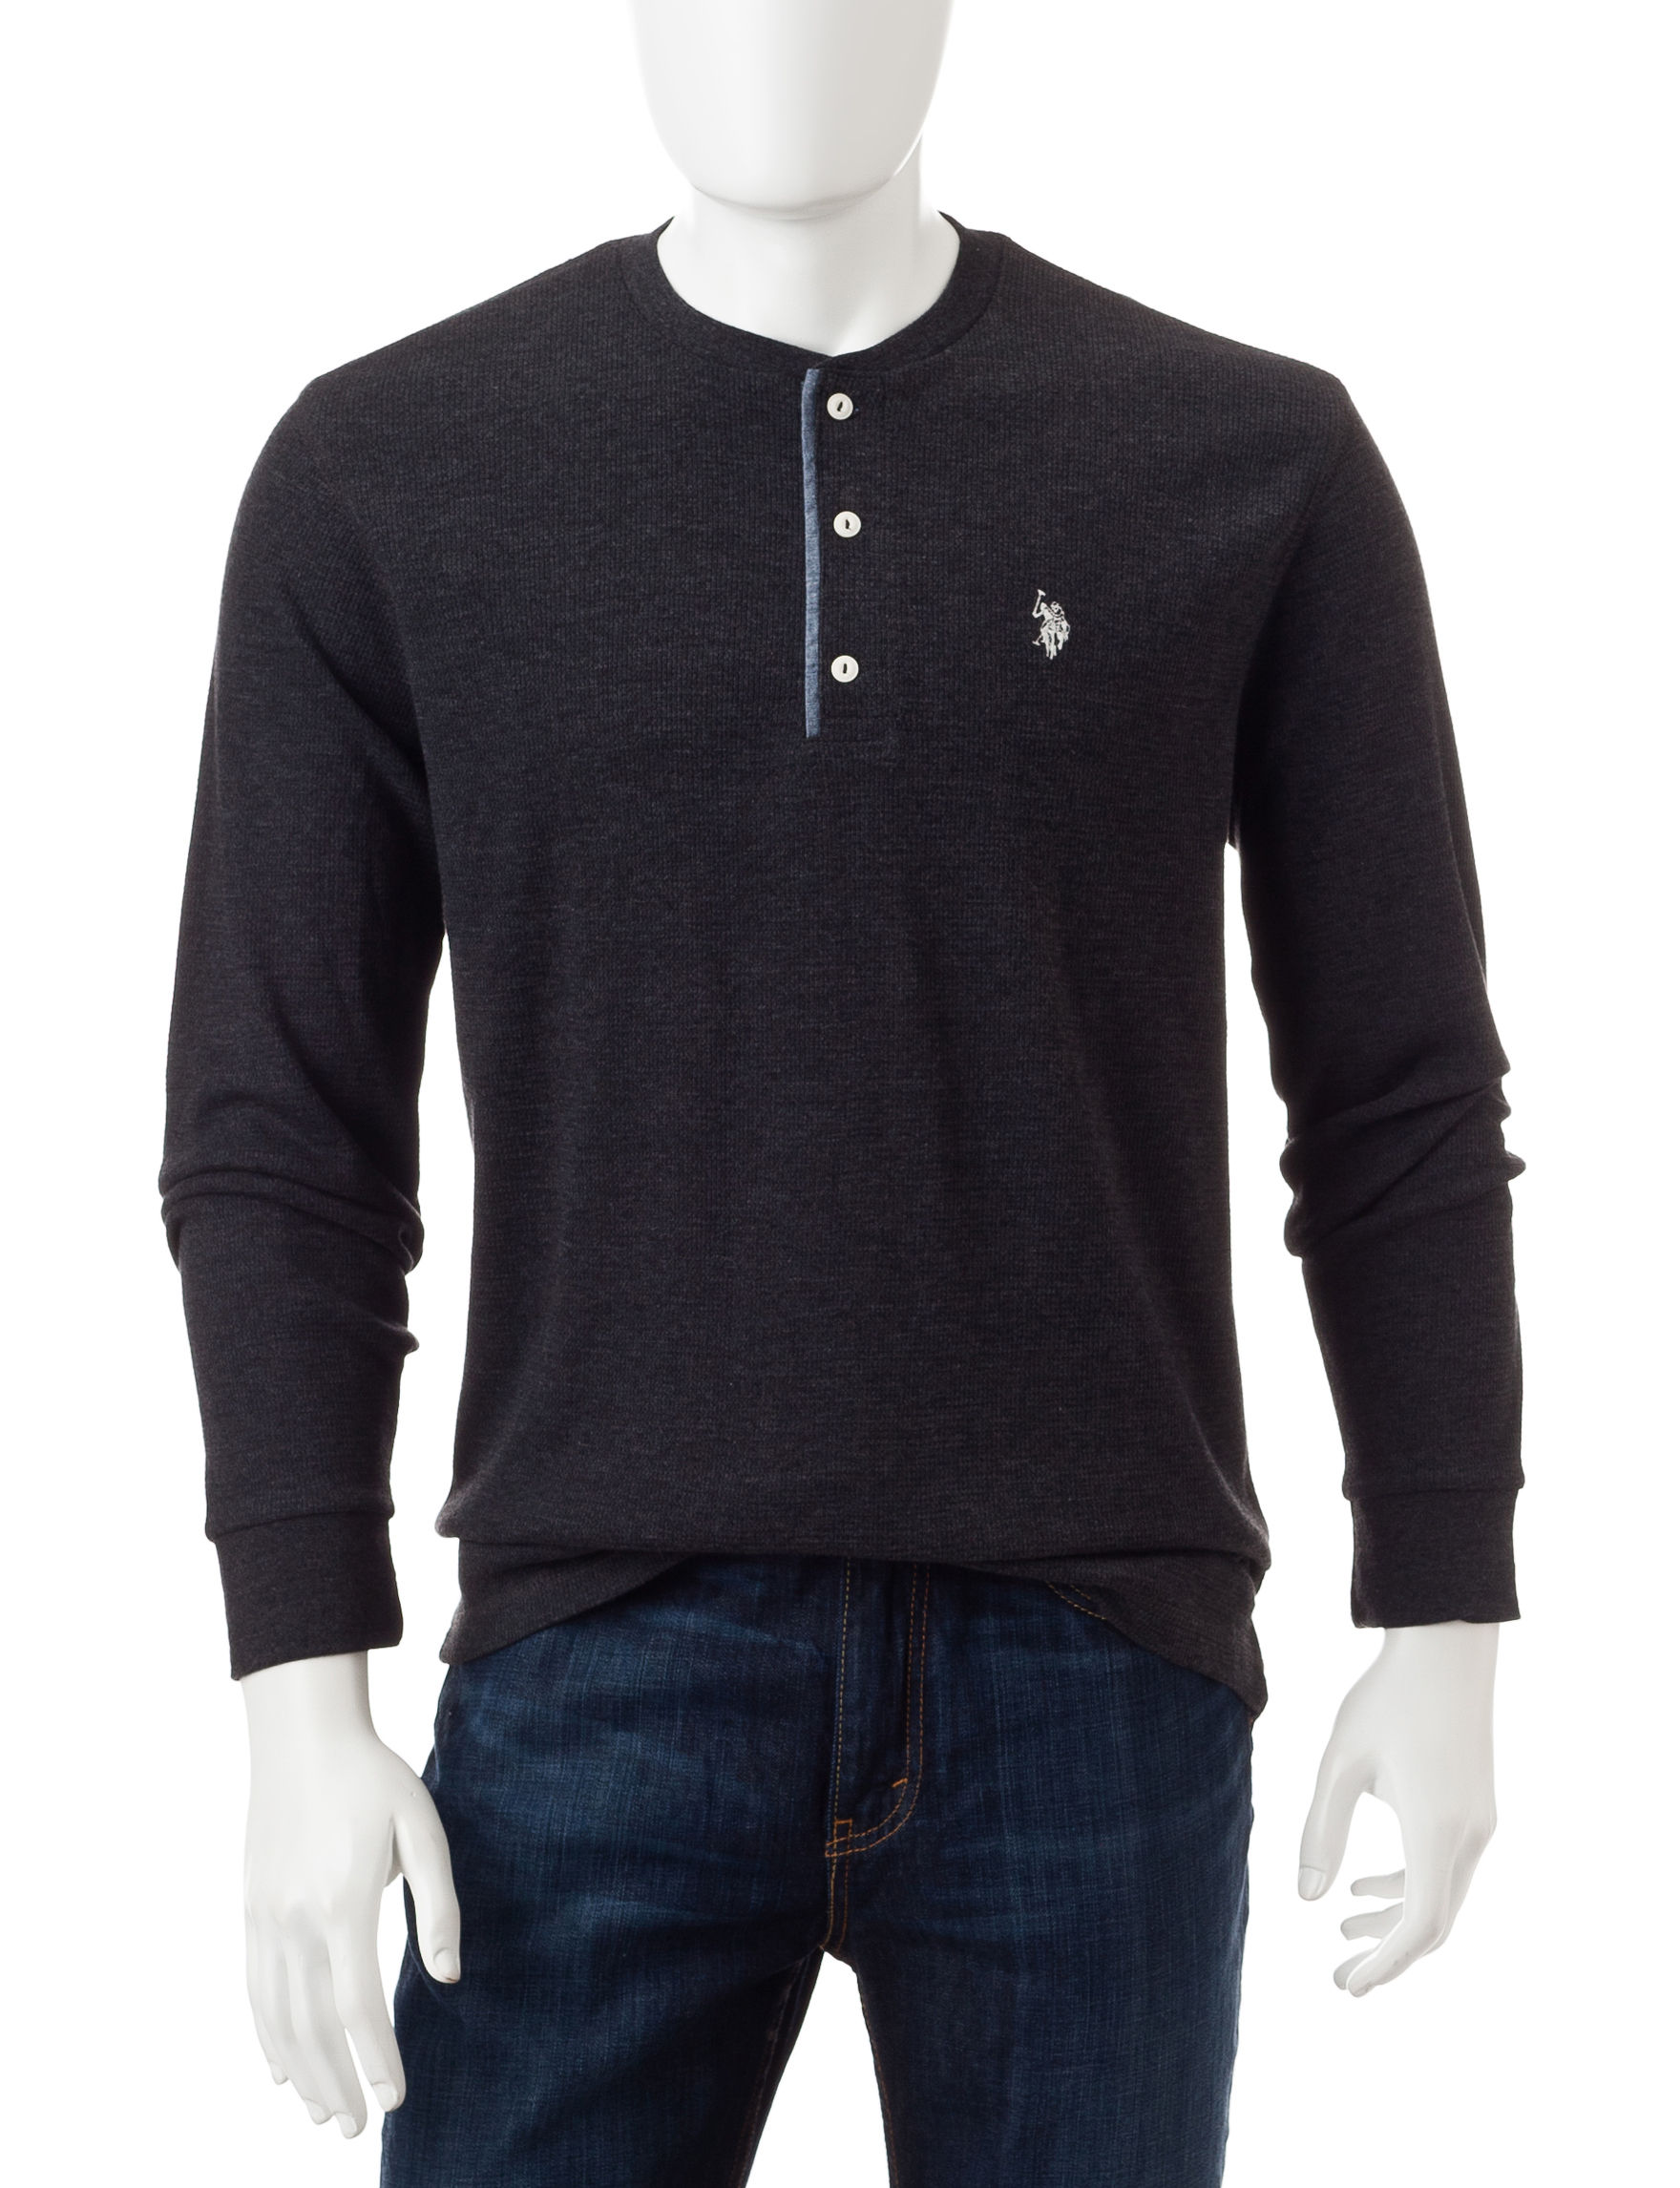 U.S. Polo Assn. Black Henleys